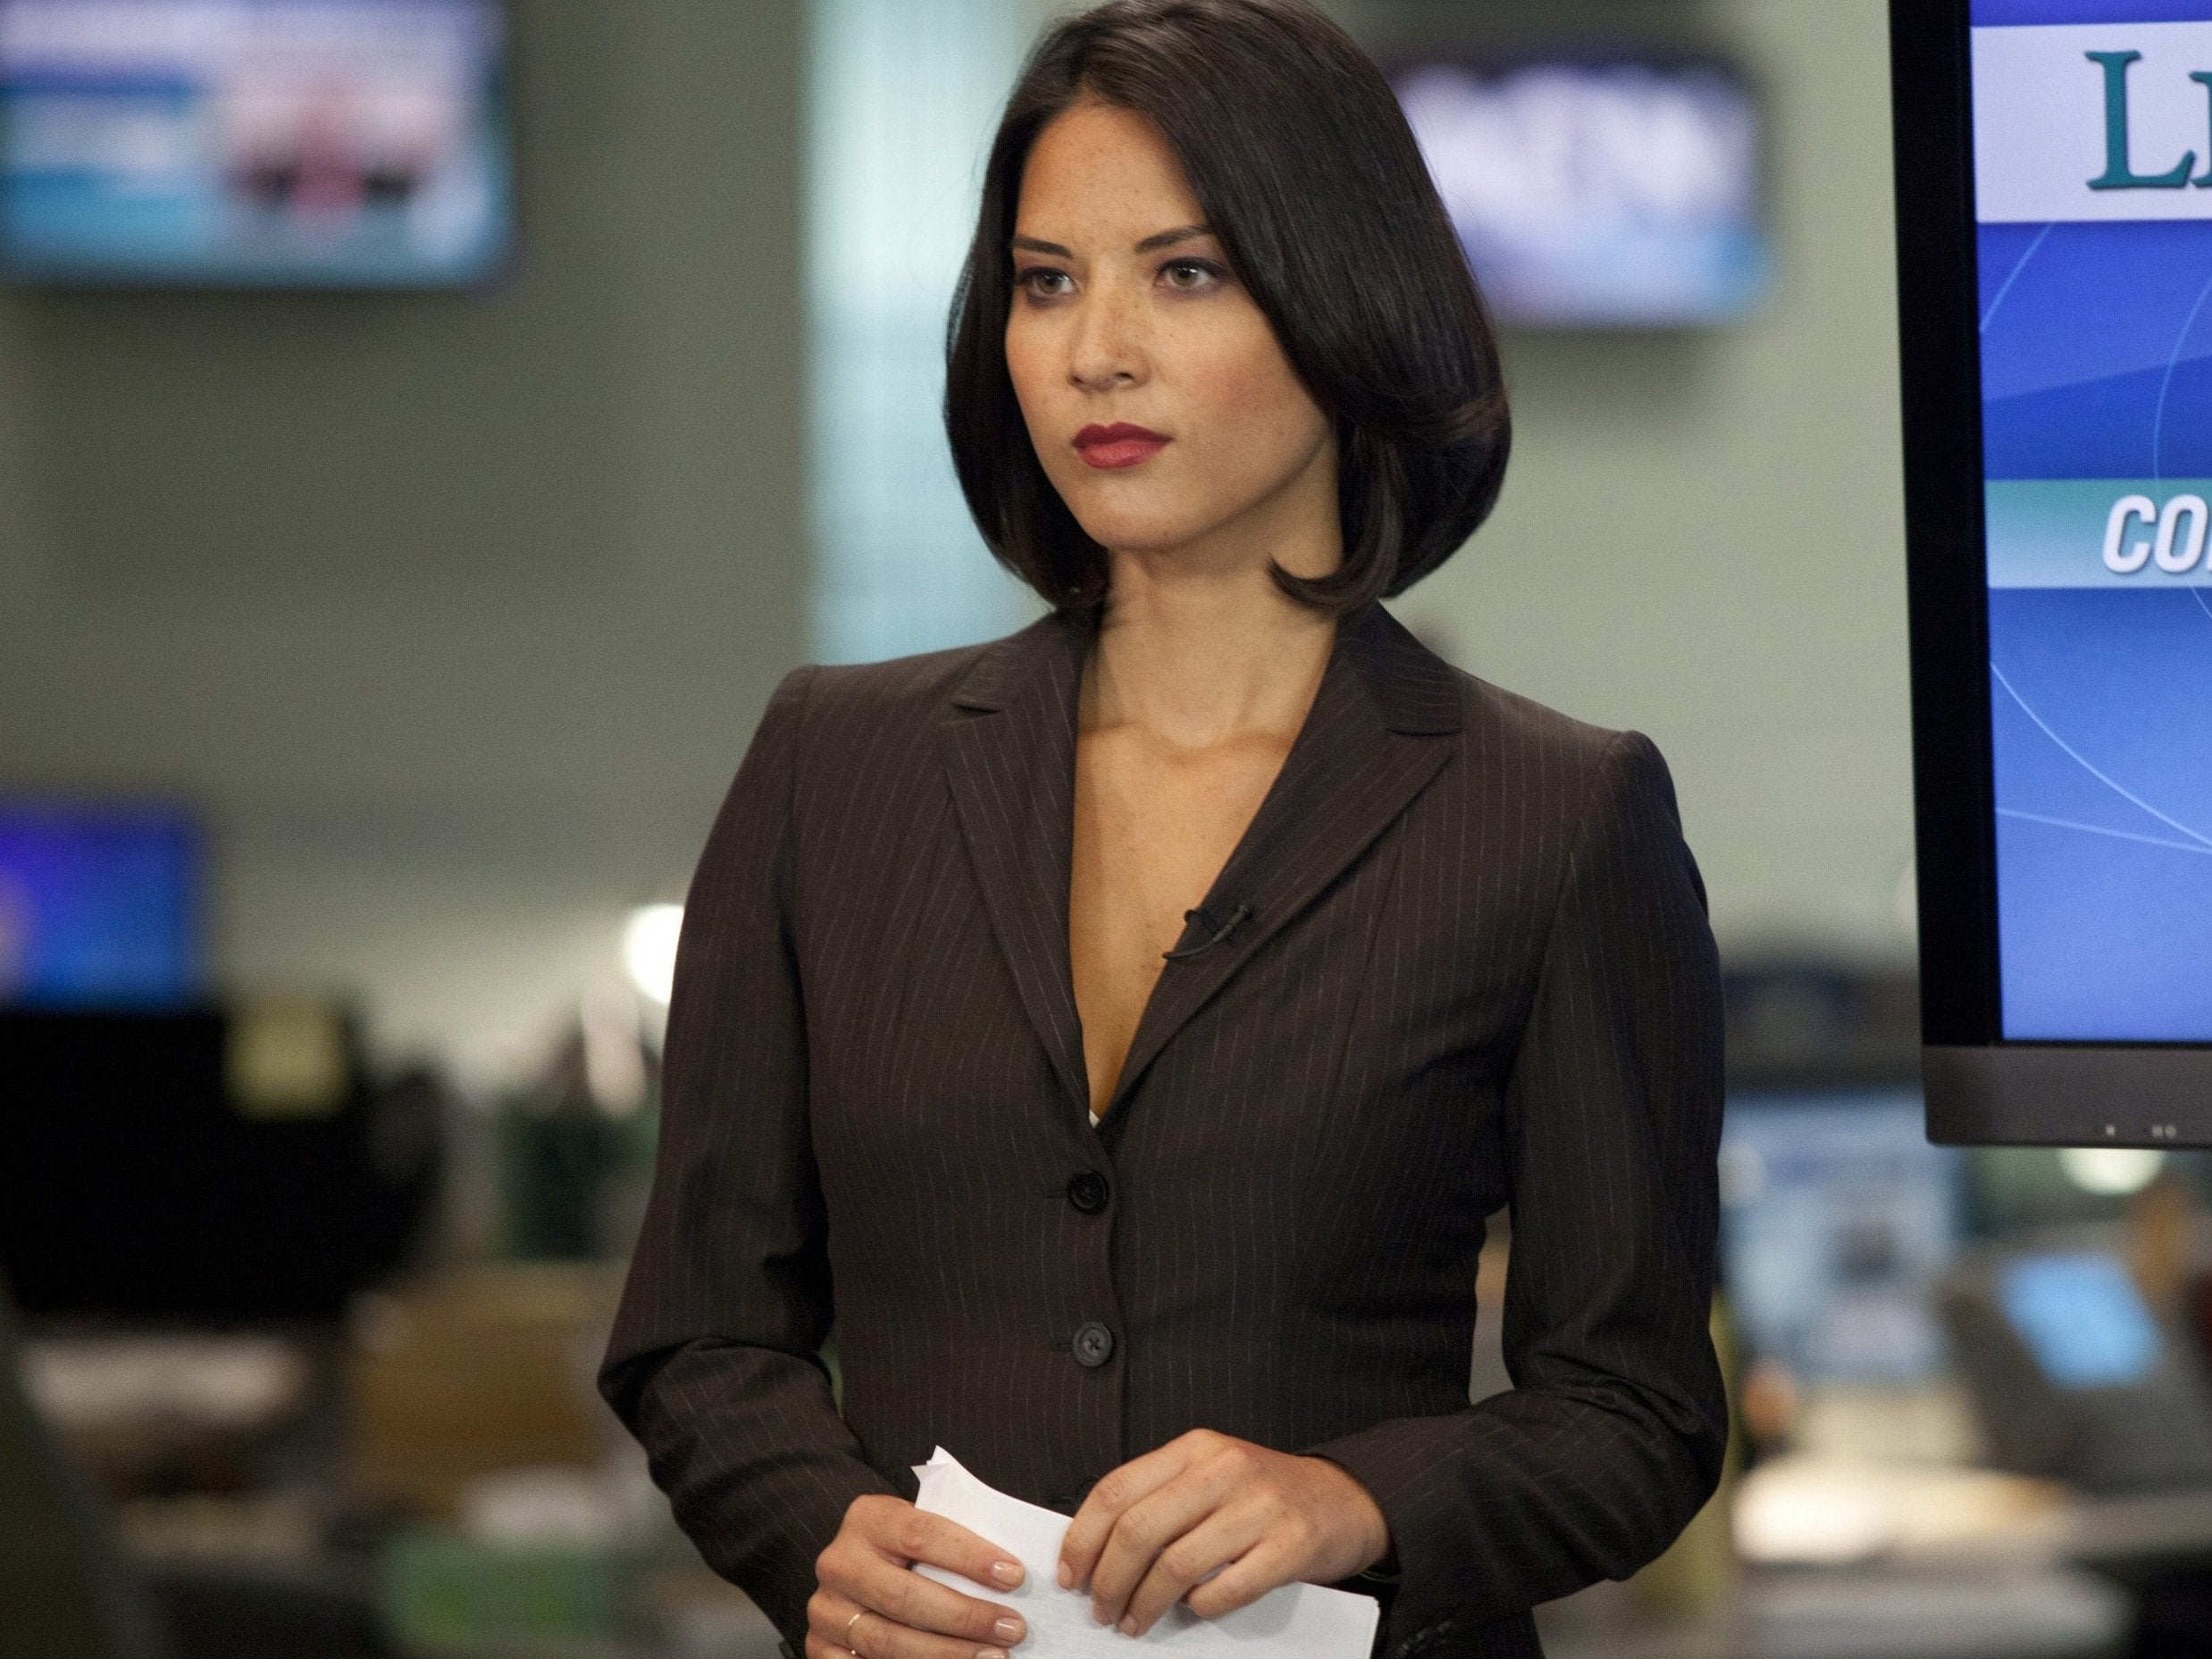 The Newsroom: Aaron Sorkin's HBO series could be returning